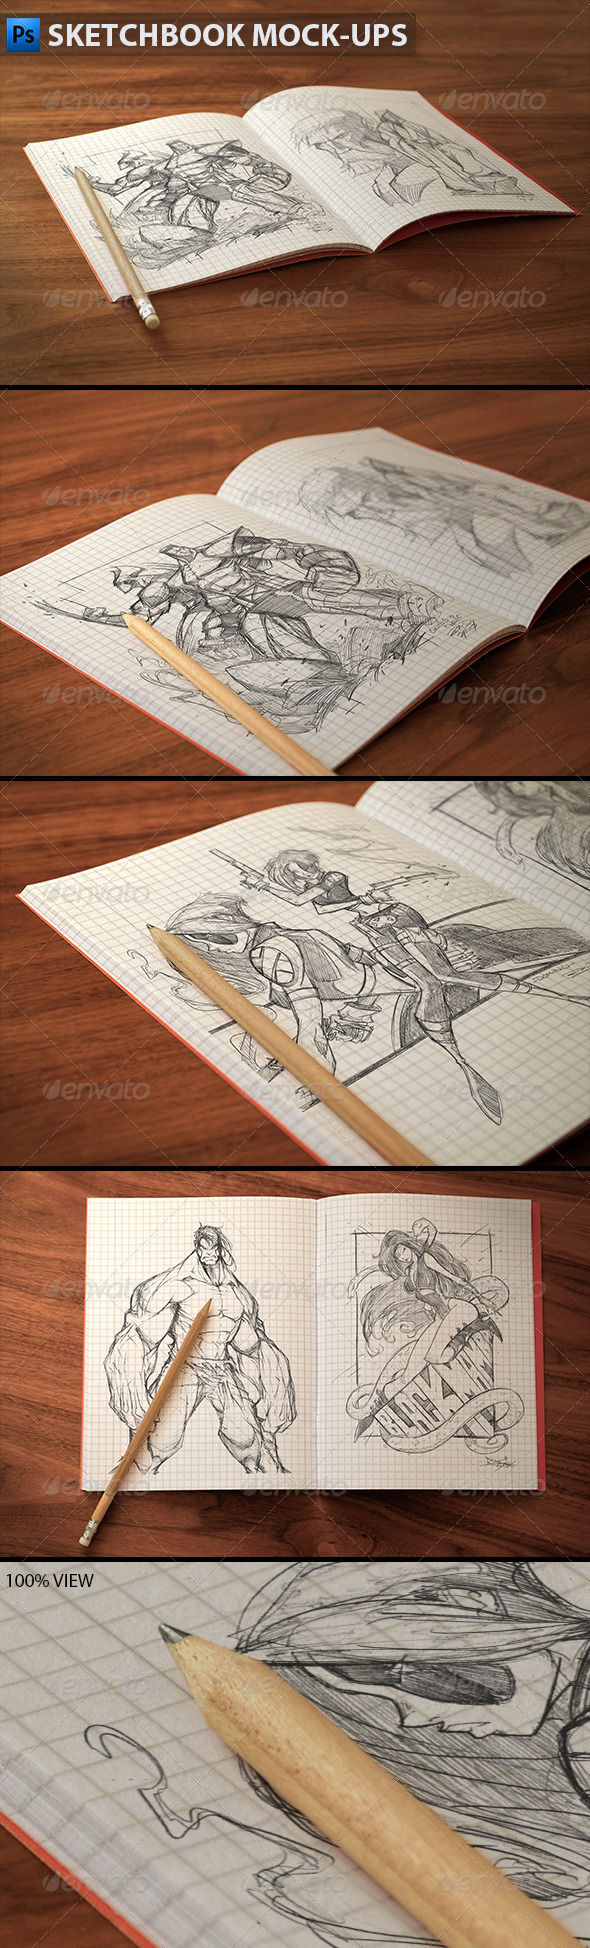 Sketchbook Mock-ups